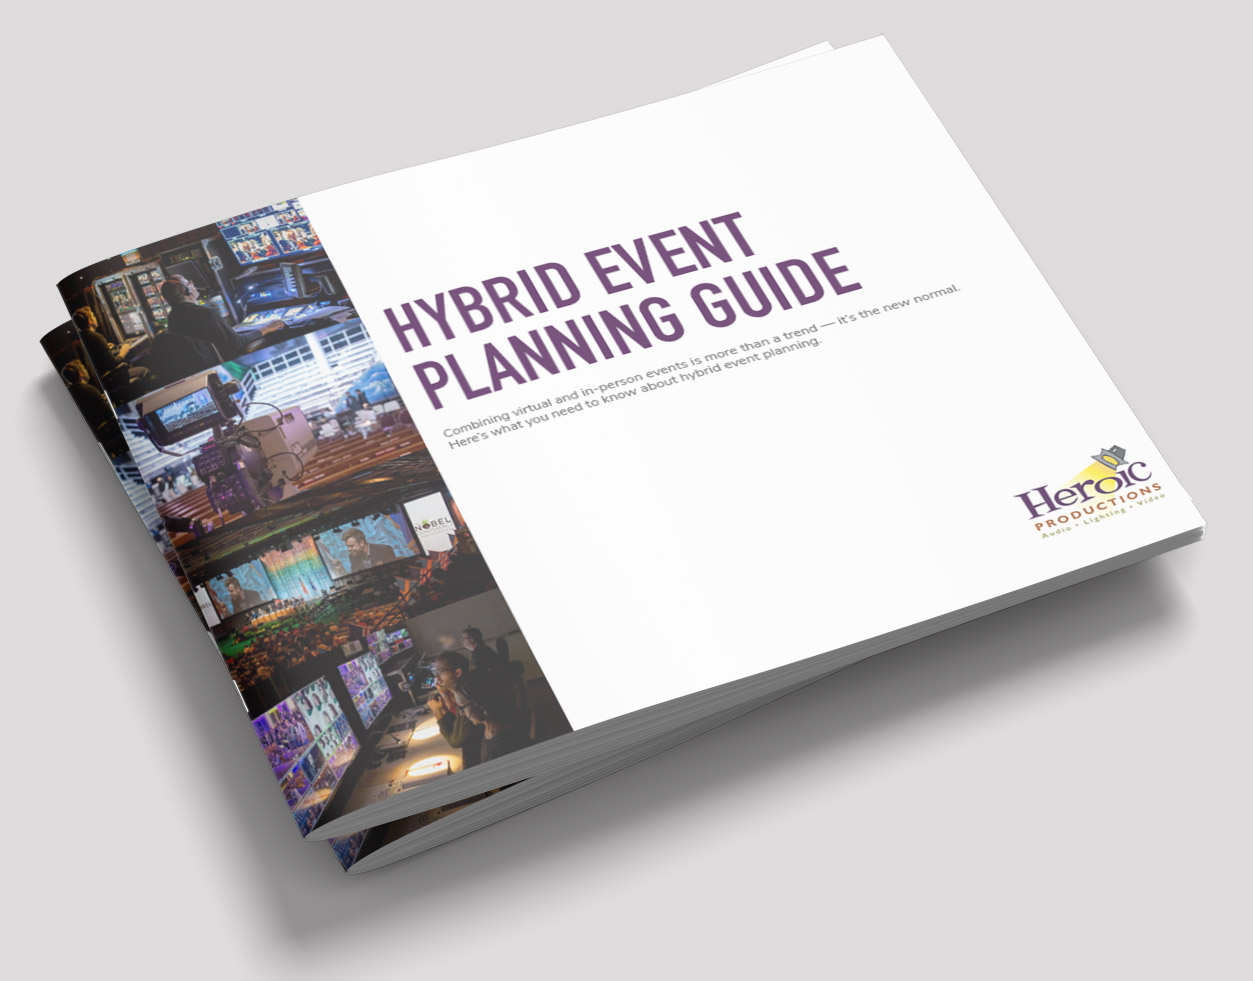 Hybrid Event Planning Guide